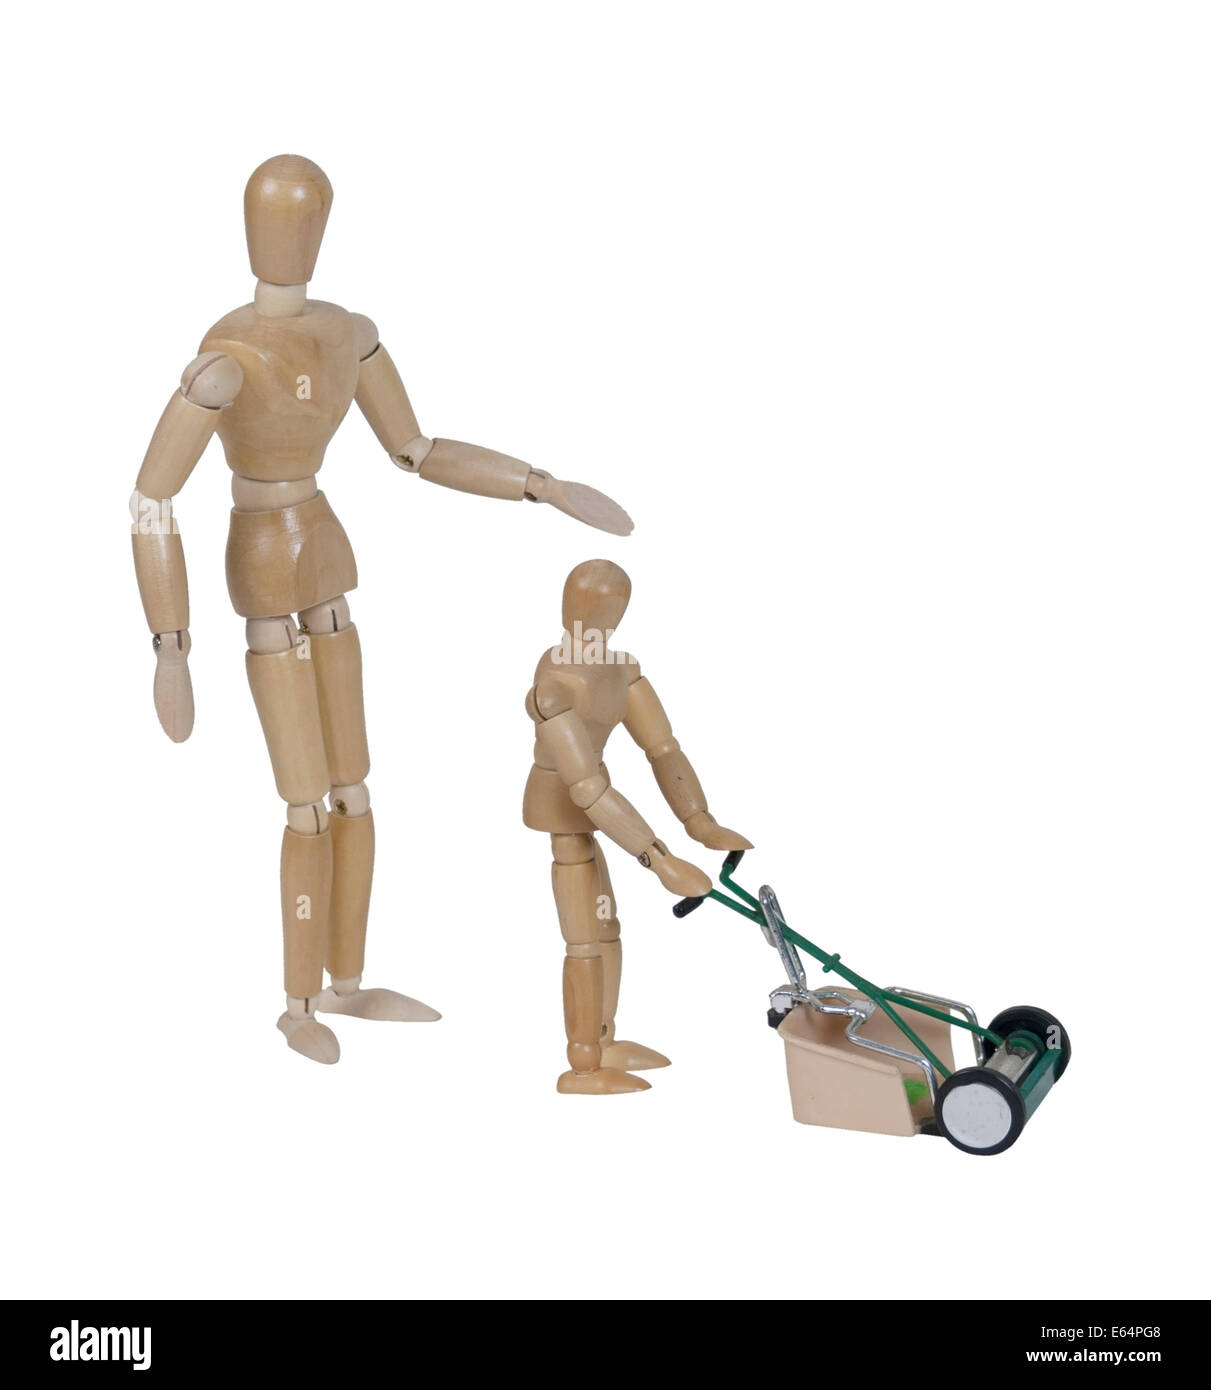 Adult supervising child using a push style lawn mower for cutting the grass - Stock Image